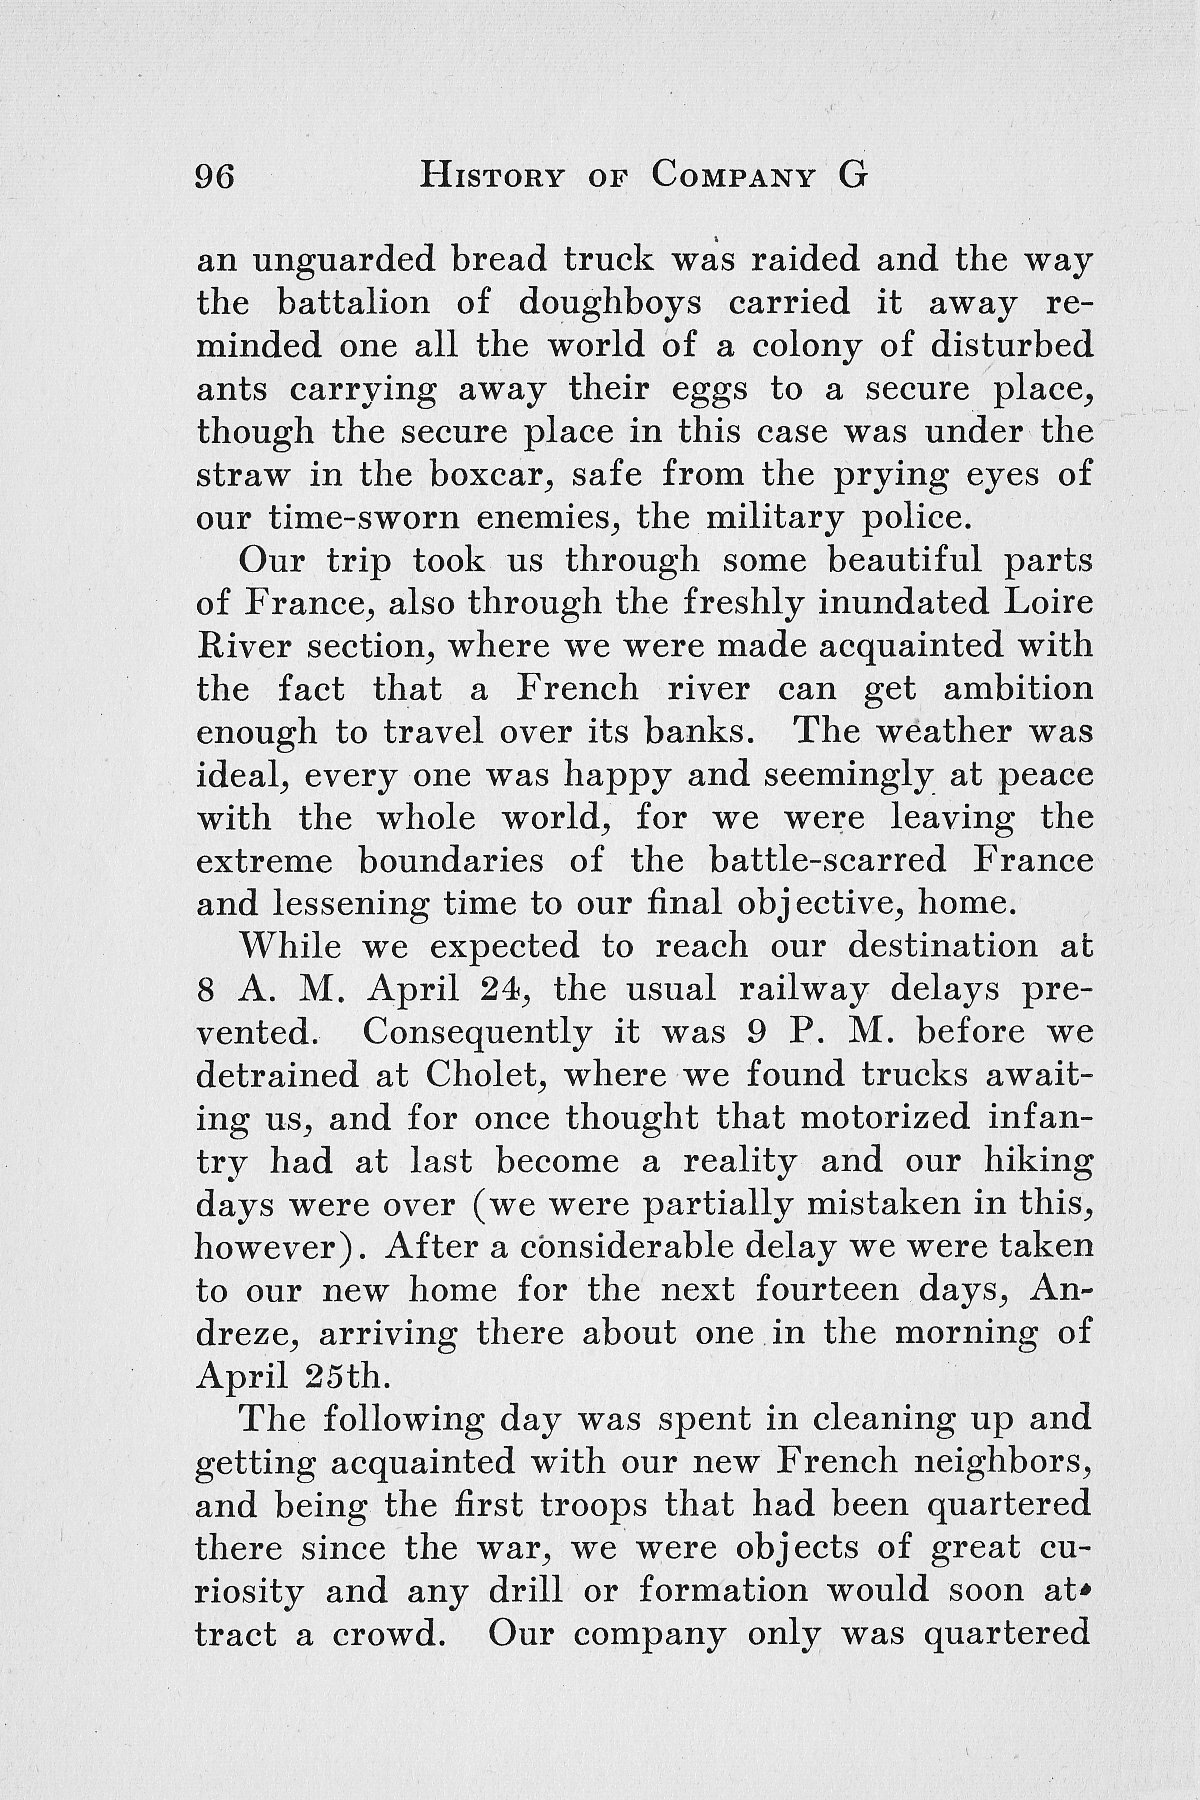 History of Company G 314th Infanty - Page 096